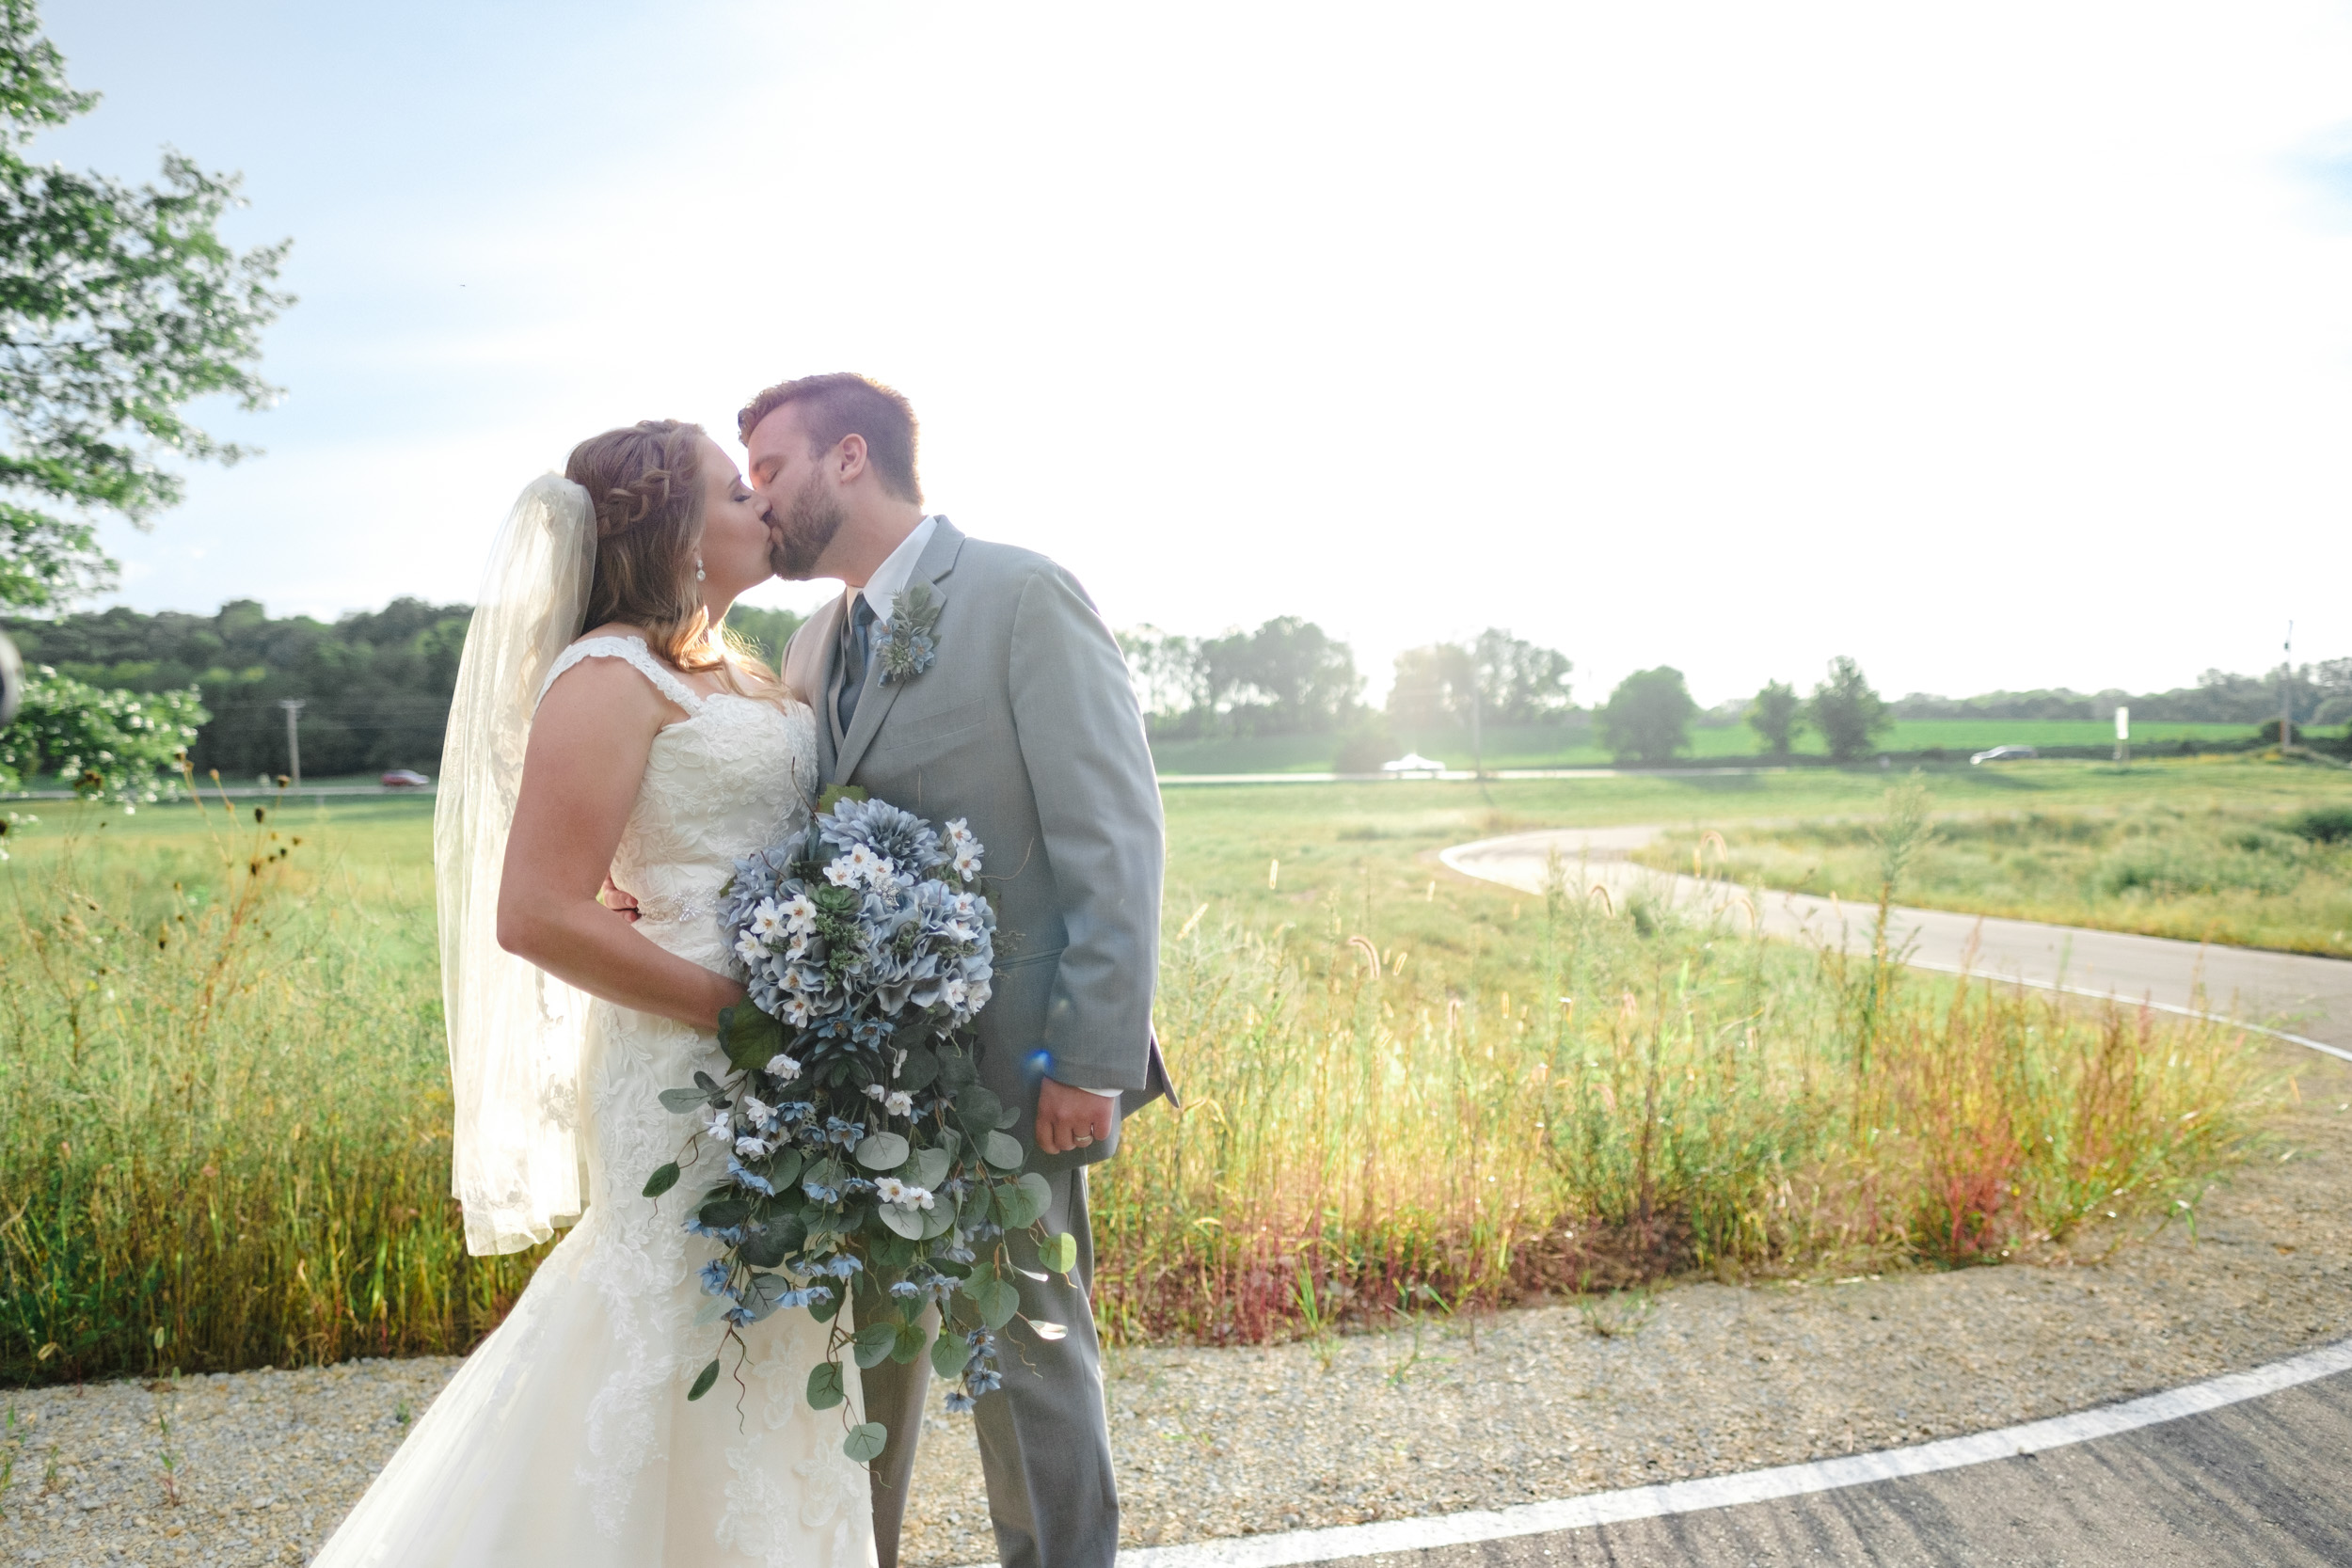 Bride and Groom kiss at The Fields Reserve in Stoughton, Wisconsin after their wedding ceremony